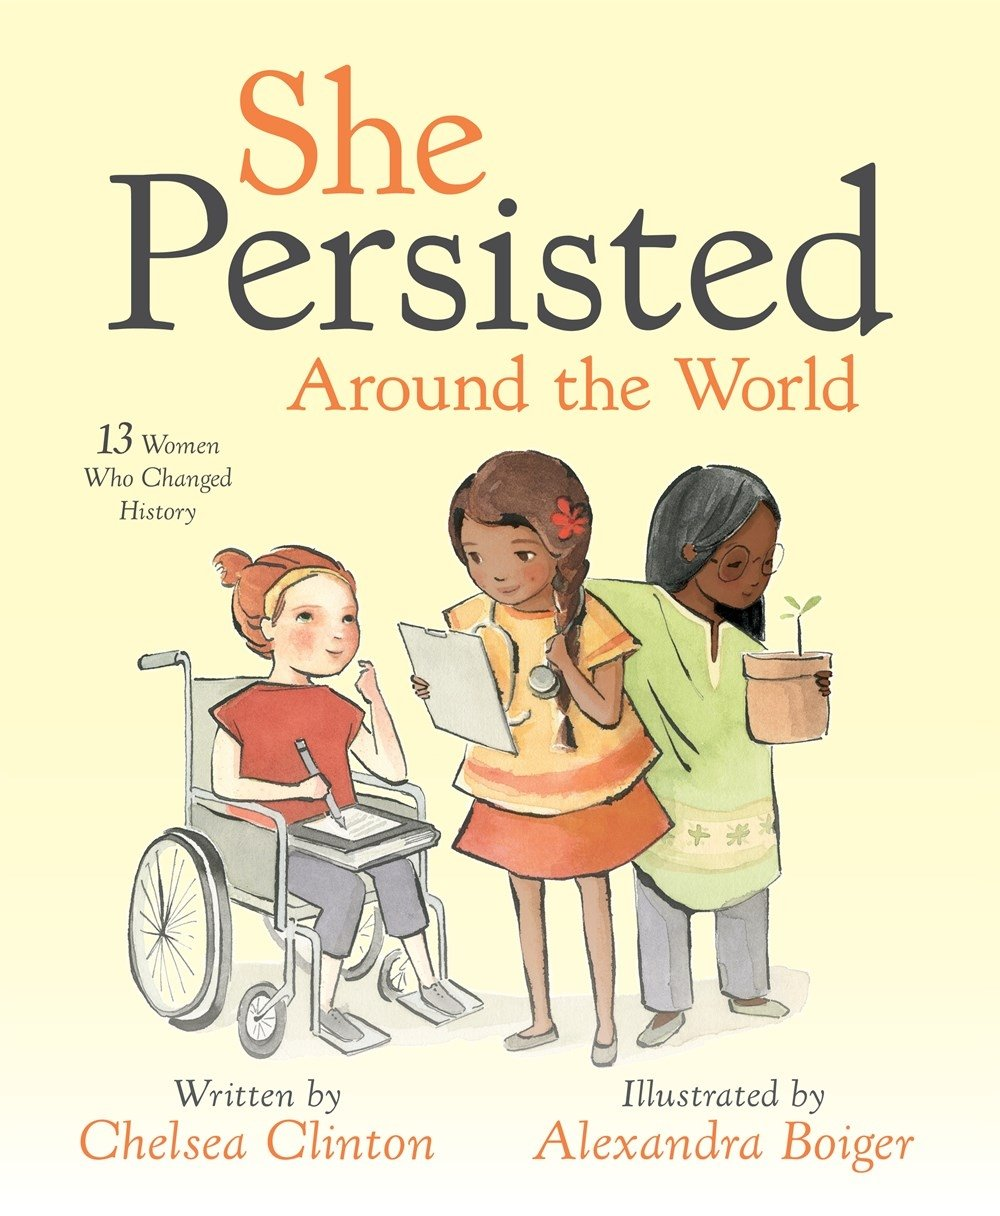 she persisted around the world cover image